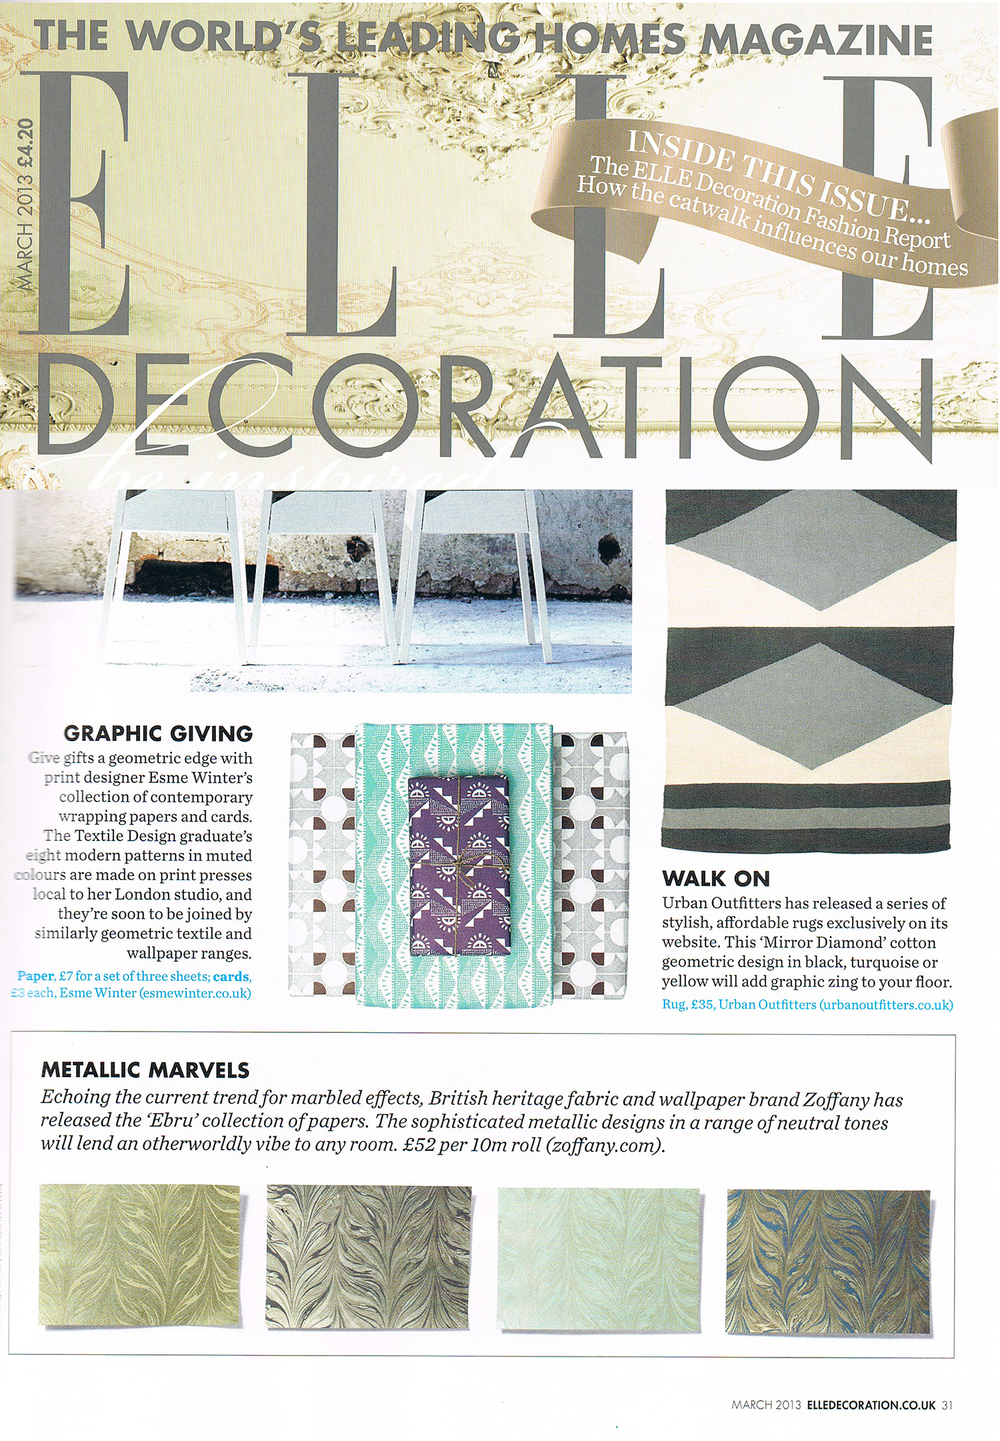 Elle decoration- march 2013 web ready.jpg